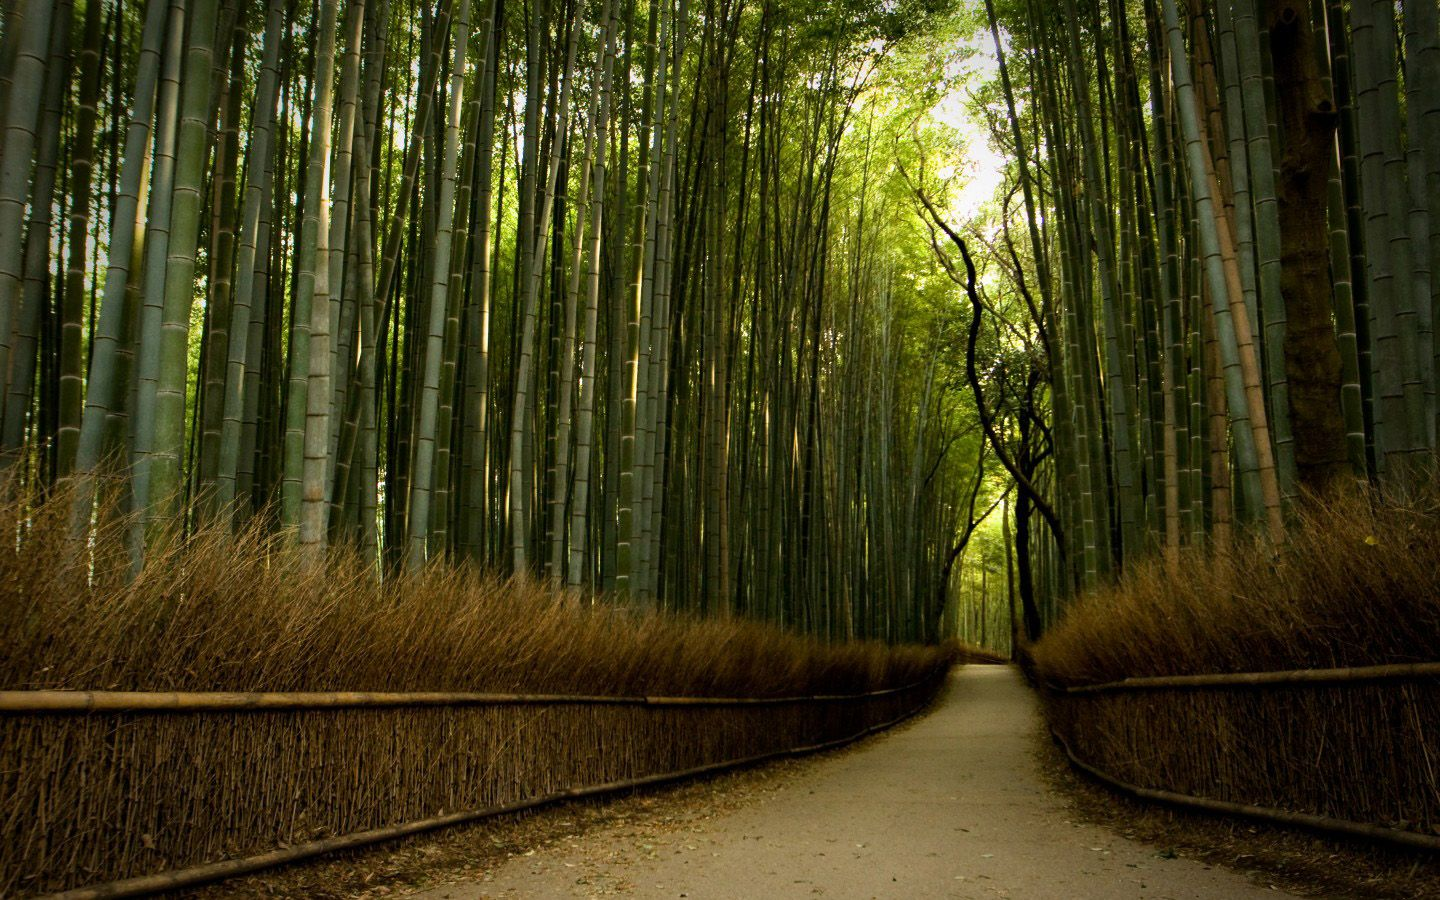 Nature Wallpaper Bamboo Trees Hd 1440 900 Pixel Popular Hd Wallpaper